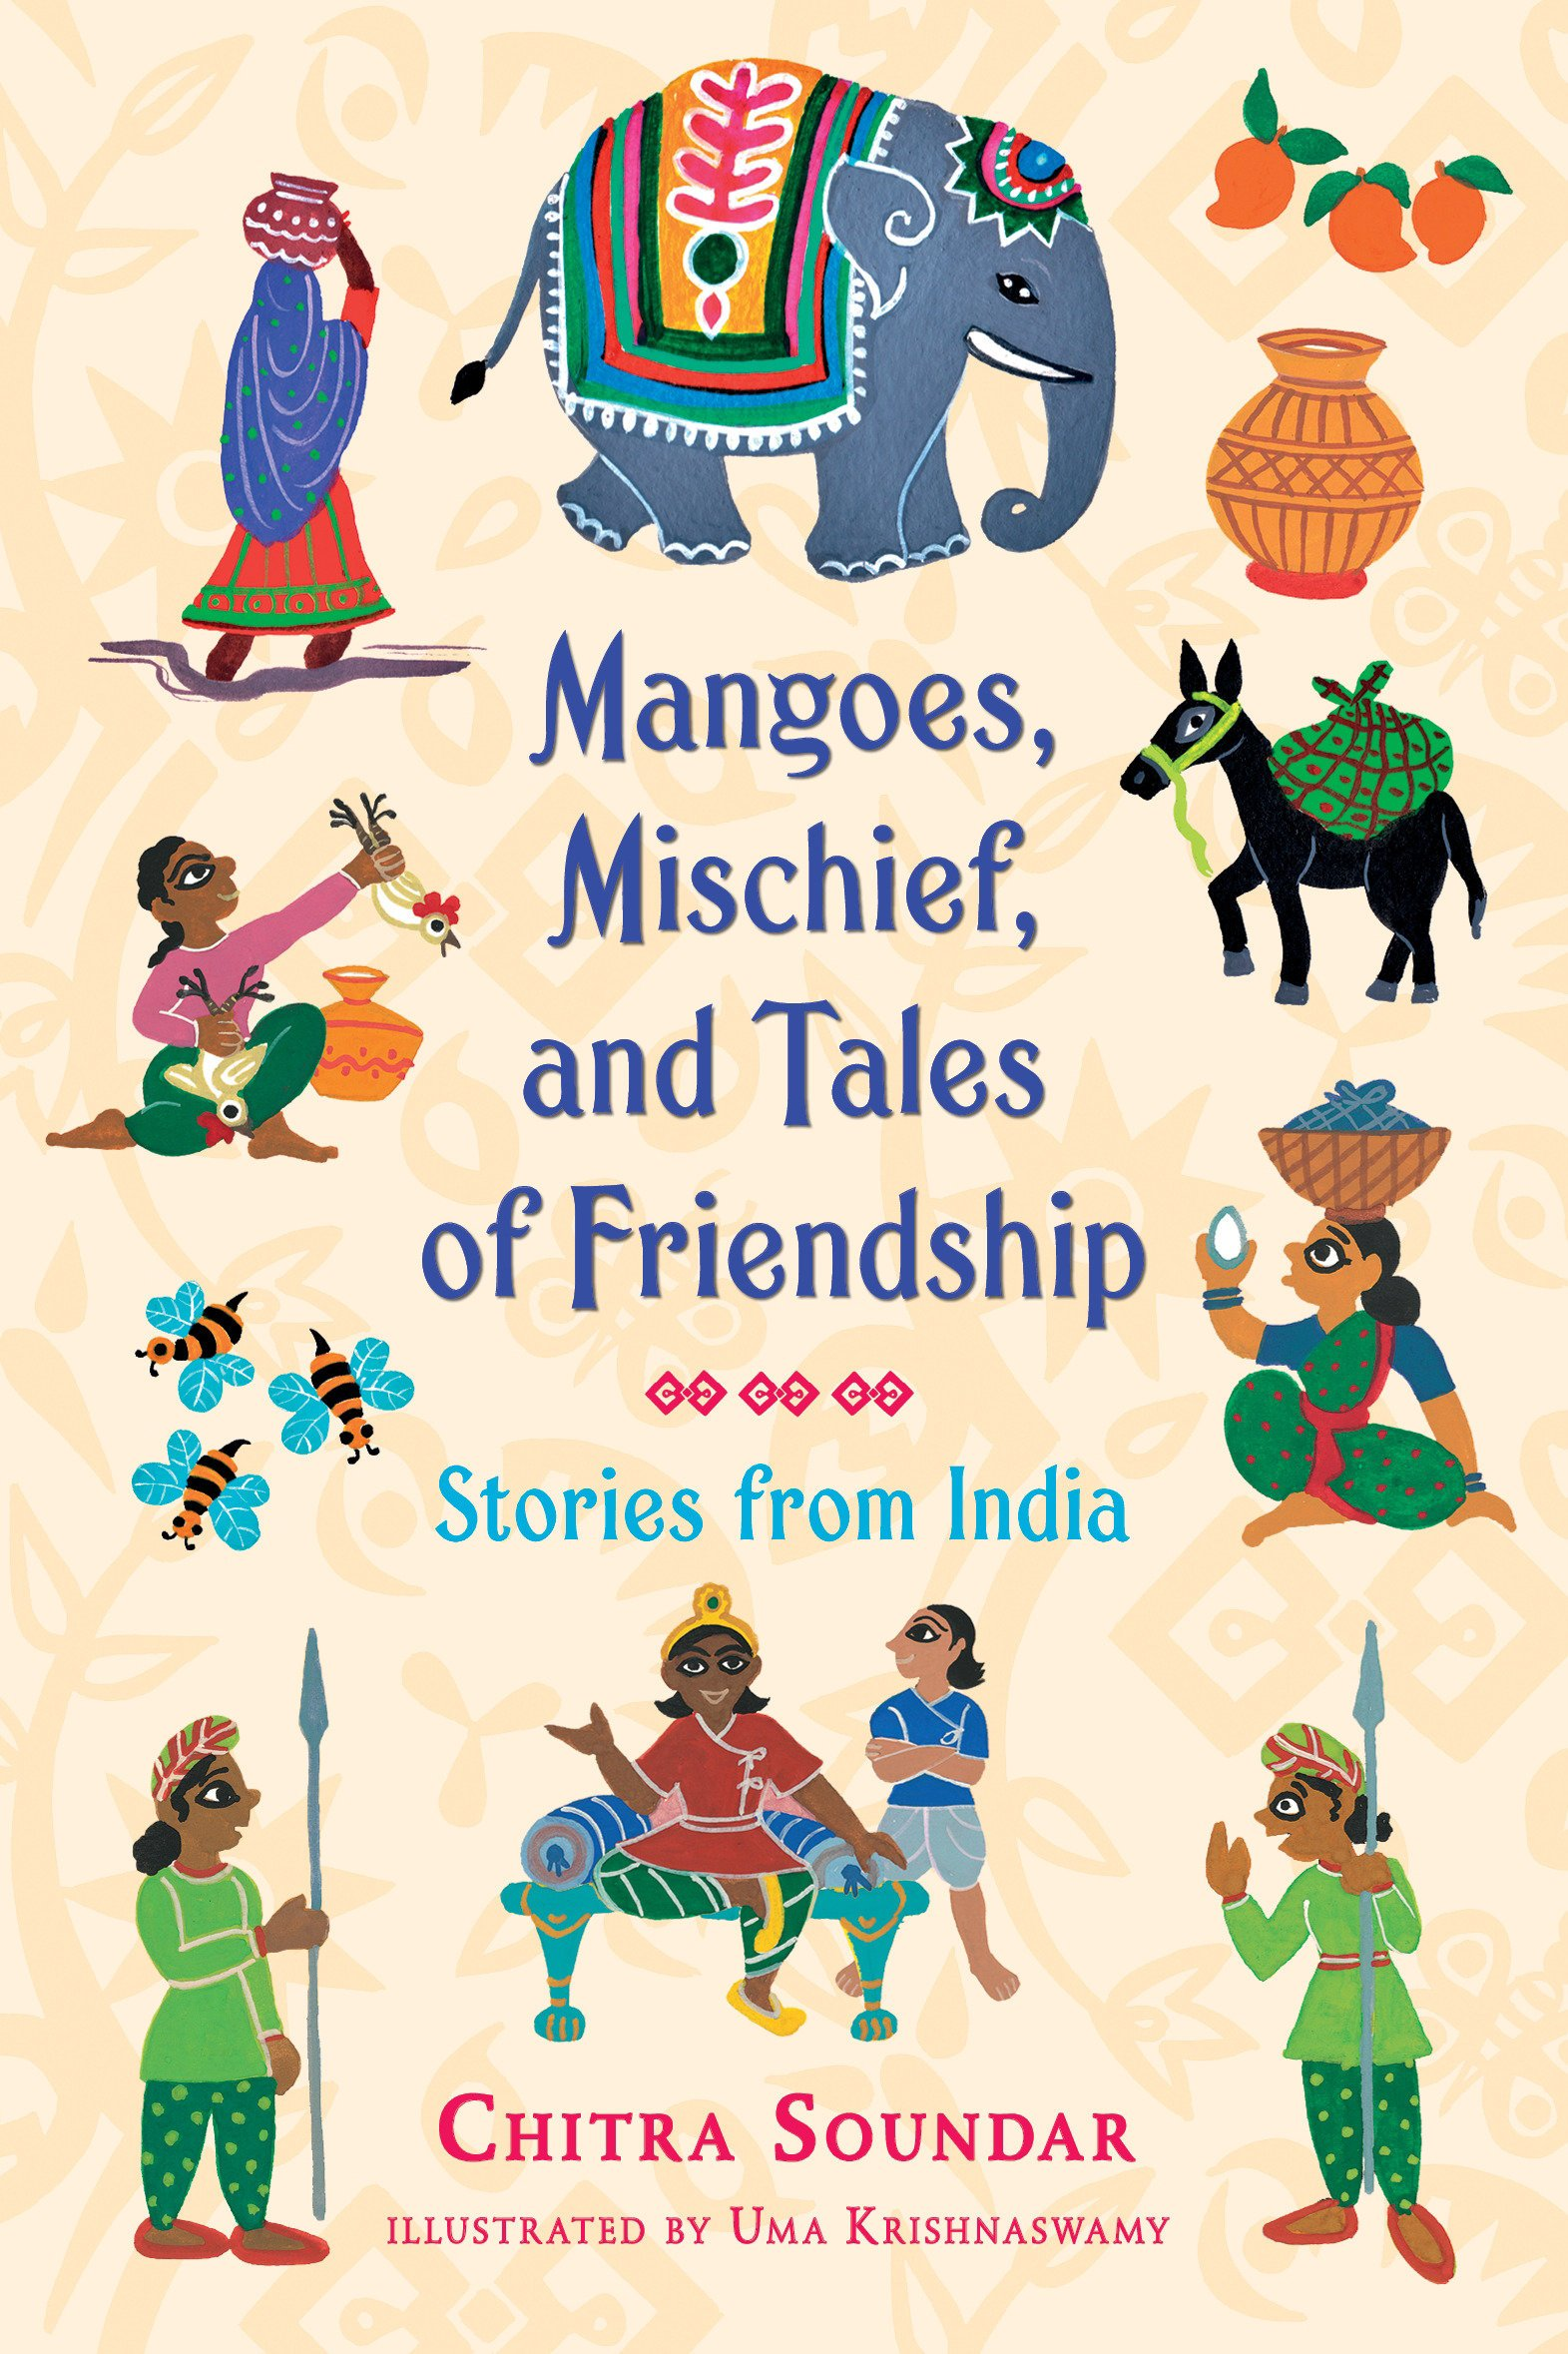 Mangoes Mischief and Tales of Friendship: Stories from India